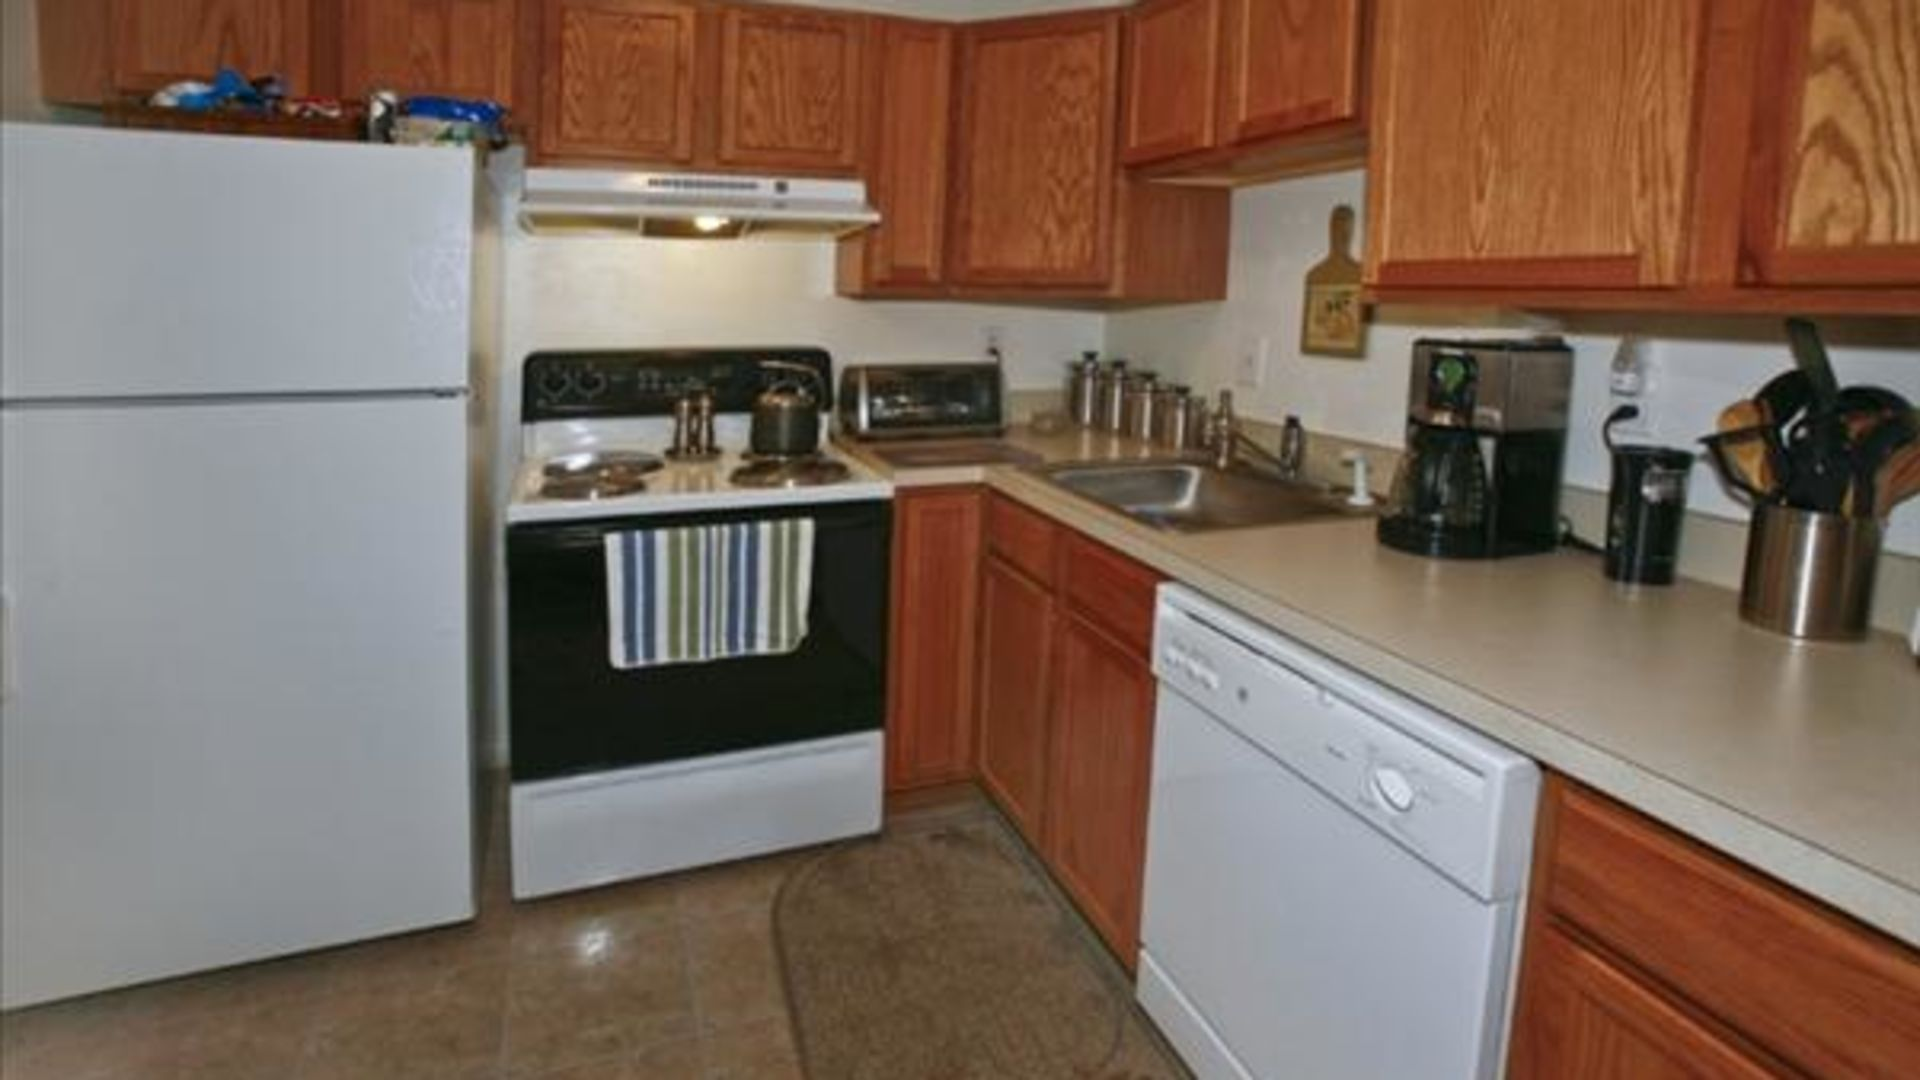 South Winds Apartments - Kitchen